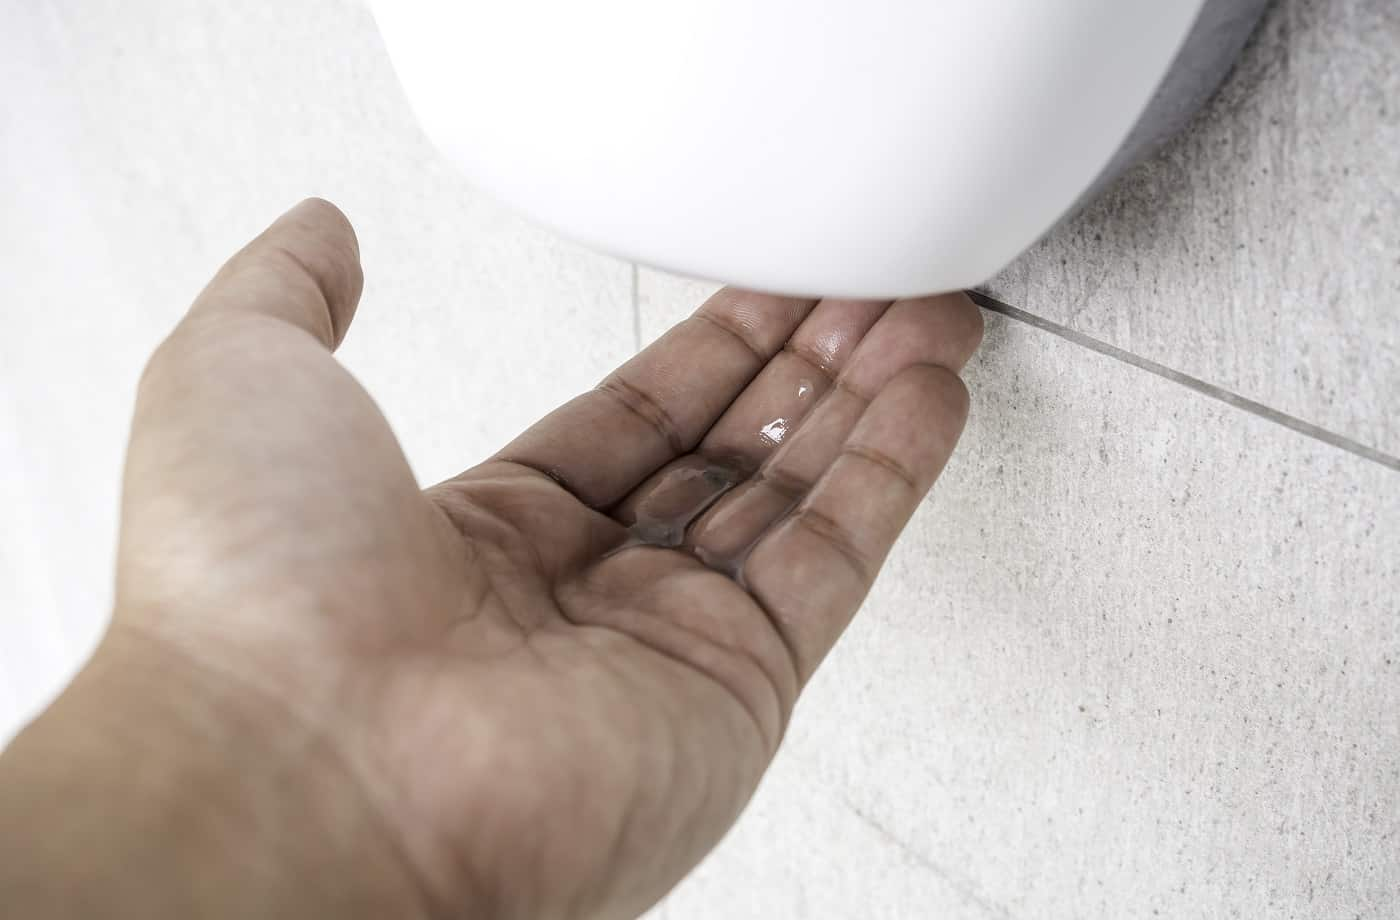 Close-up alcohol gel in hand from white automatic sanitizer hand gel on the wall. Cleaning hand with antibacterial hand disinfectant from sanitizer dispenser.